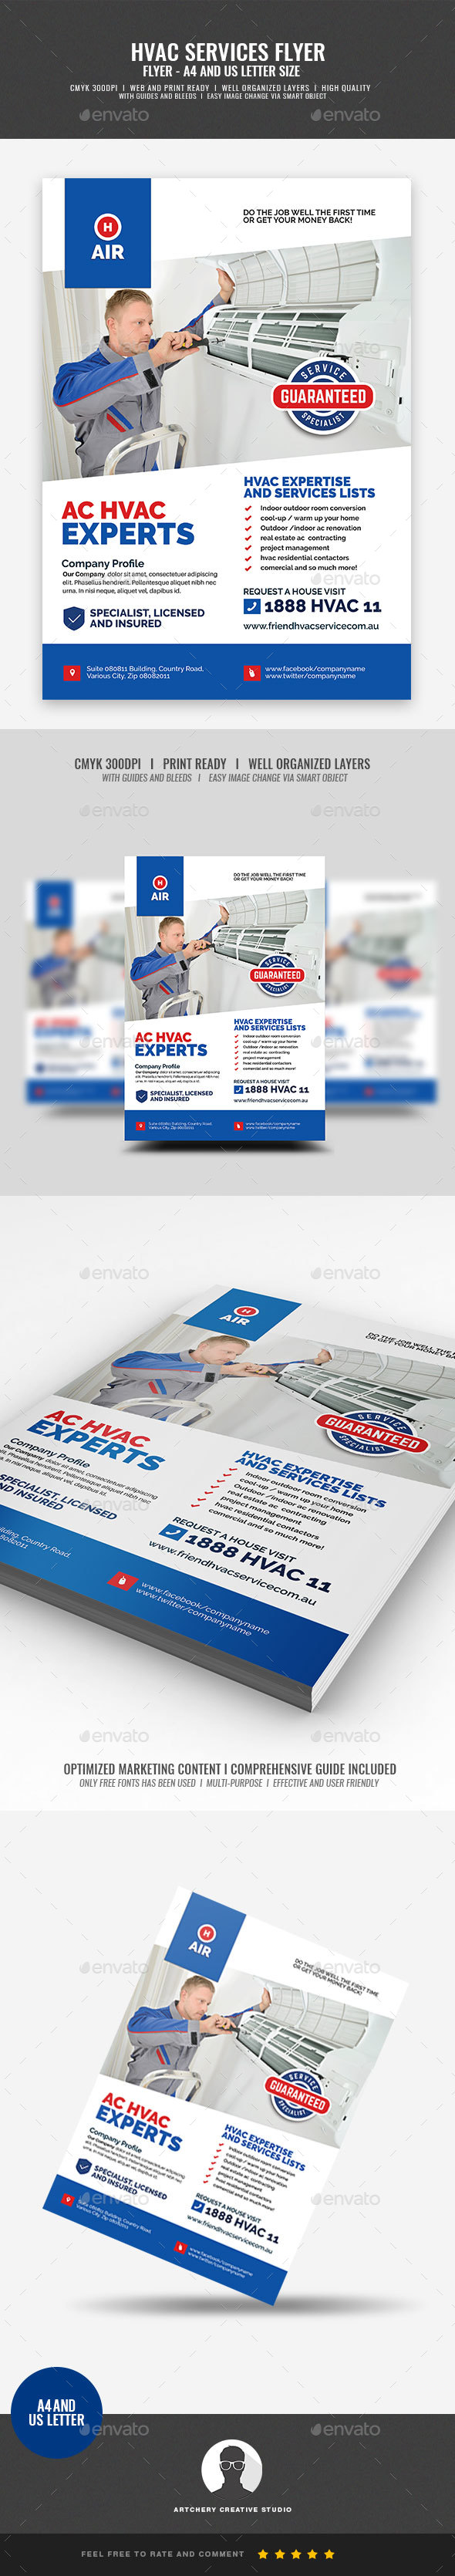 HVAC Repair and Maintenance Flyer - Corporate Flyers